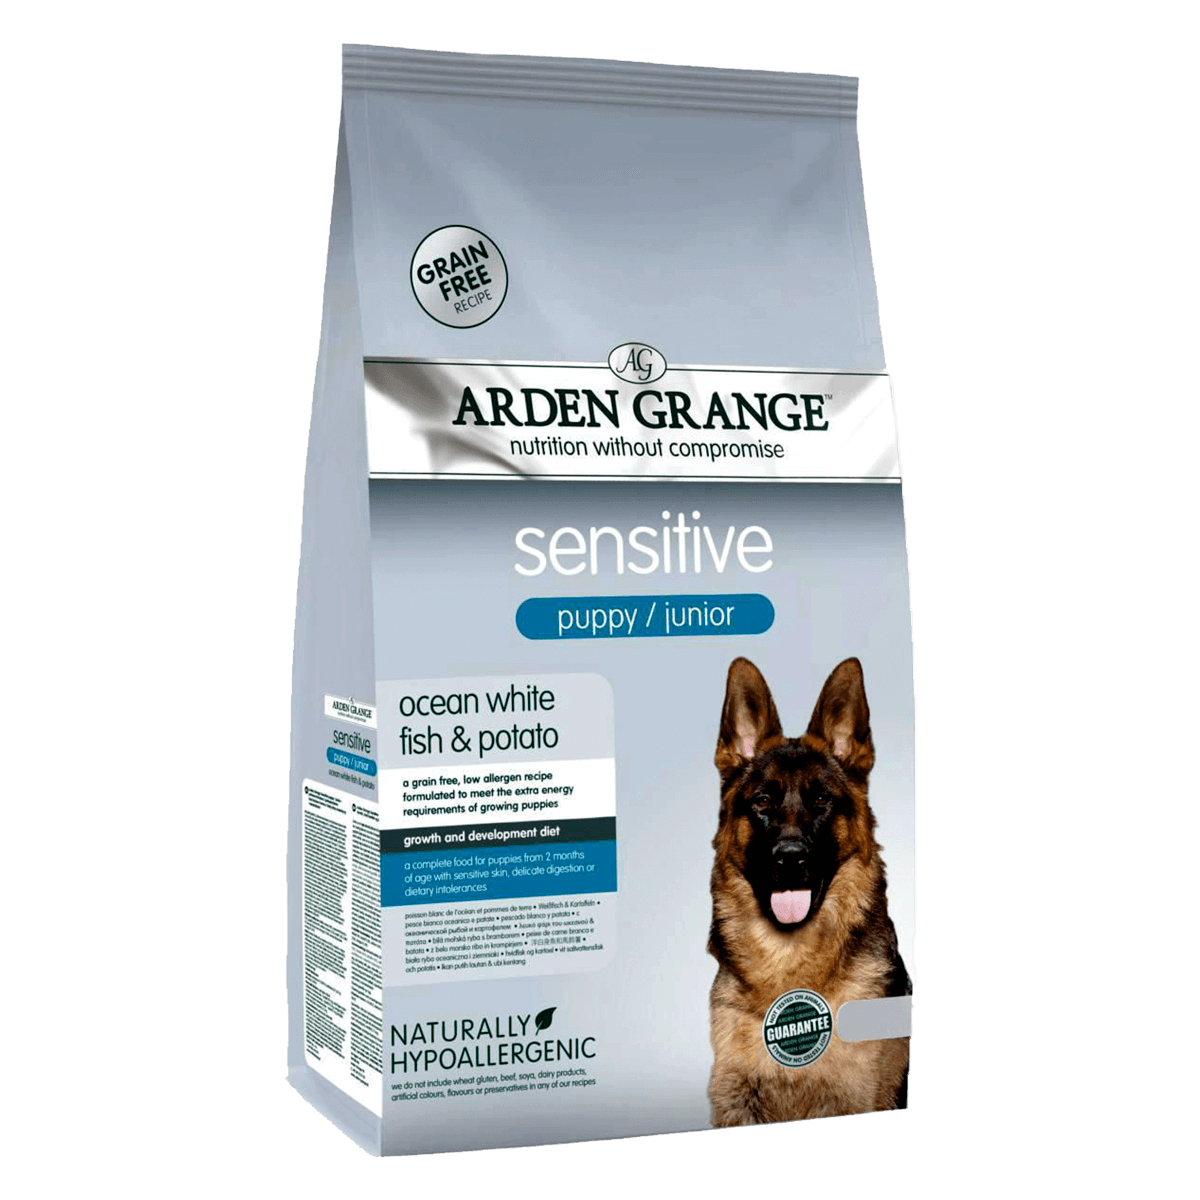 Arden Grange Sensitive Puppy/Junior Ocean White Fish & Potato 2 кг - корм Арден Гранж для щенков